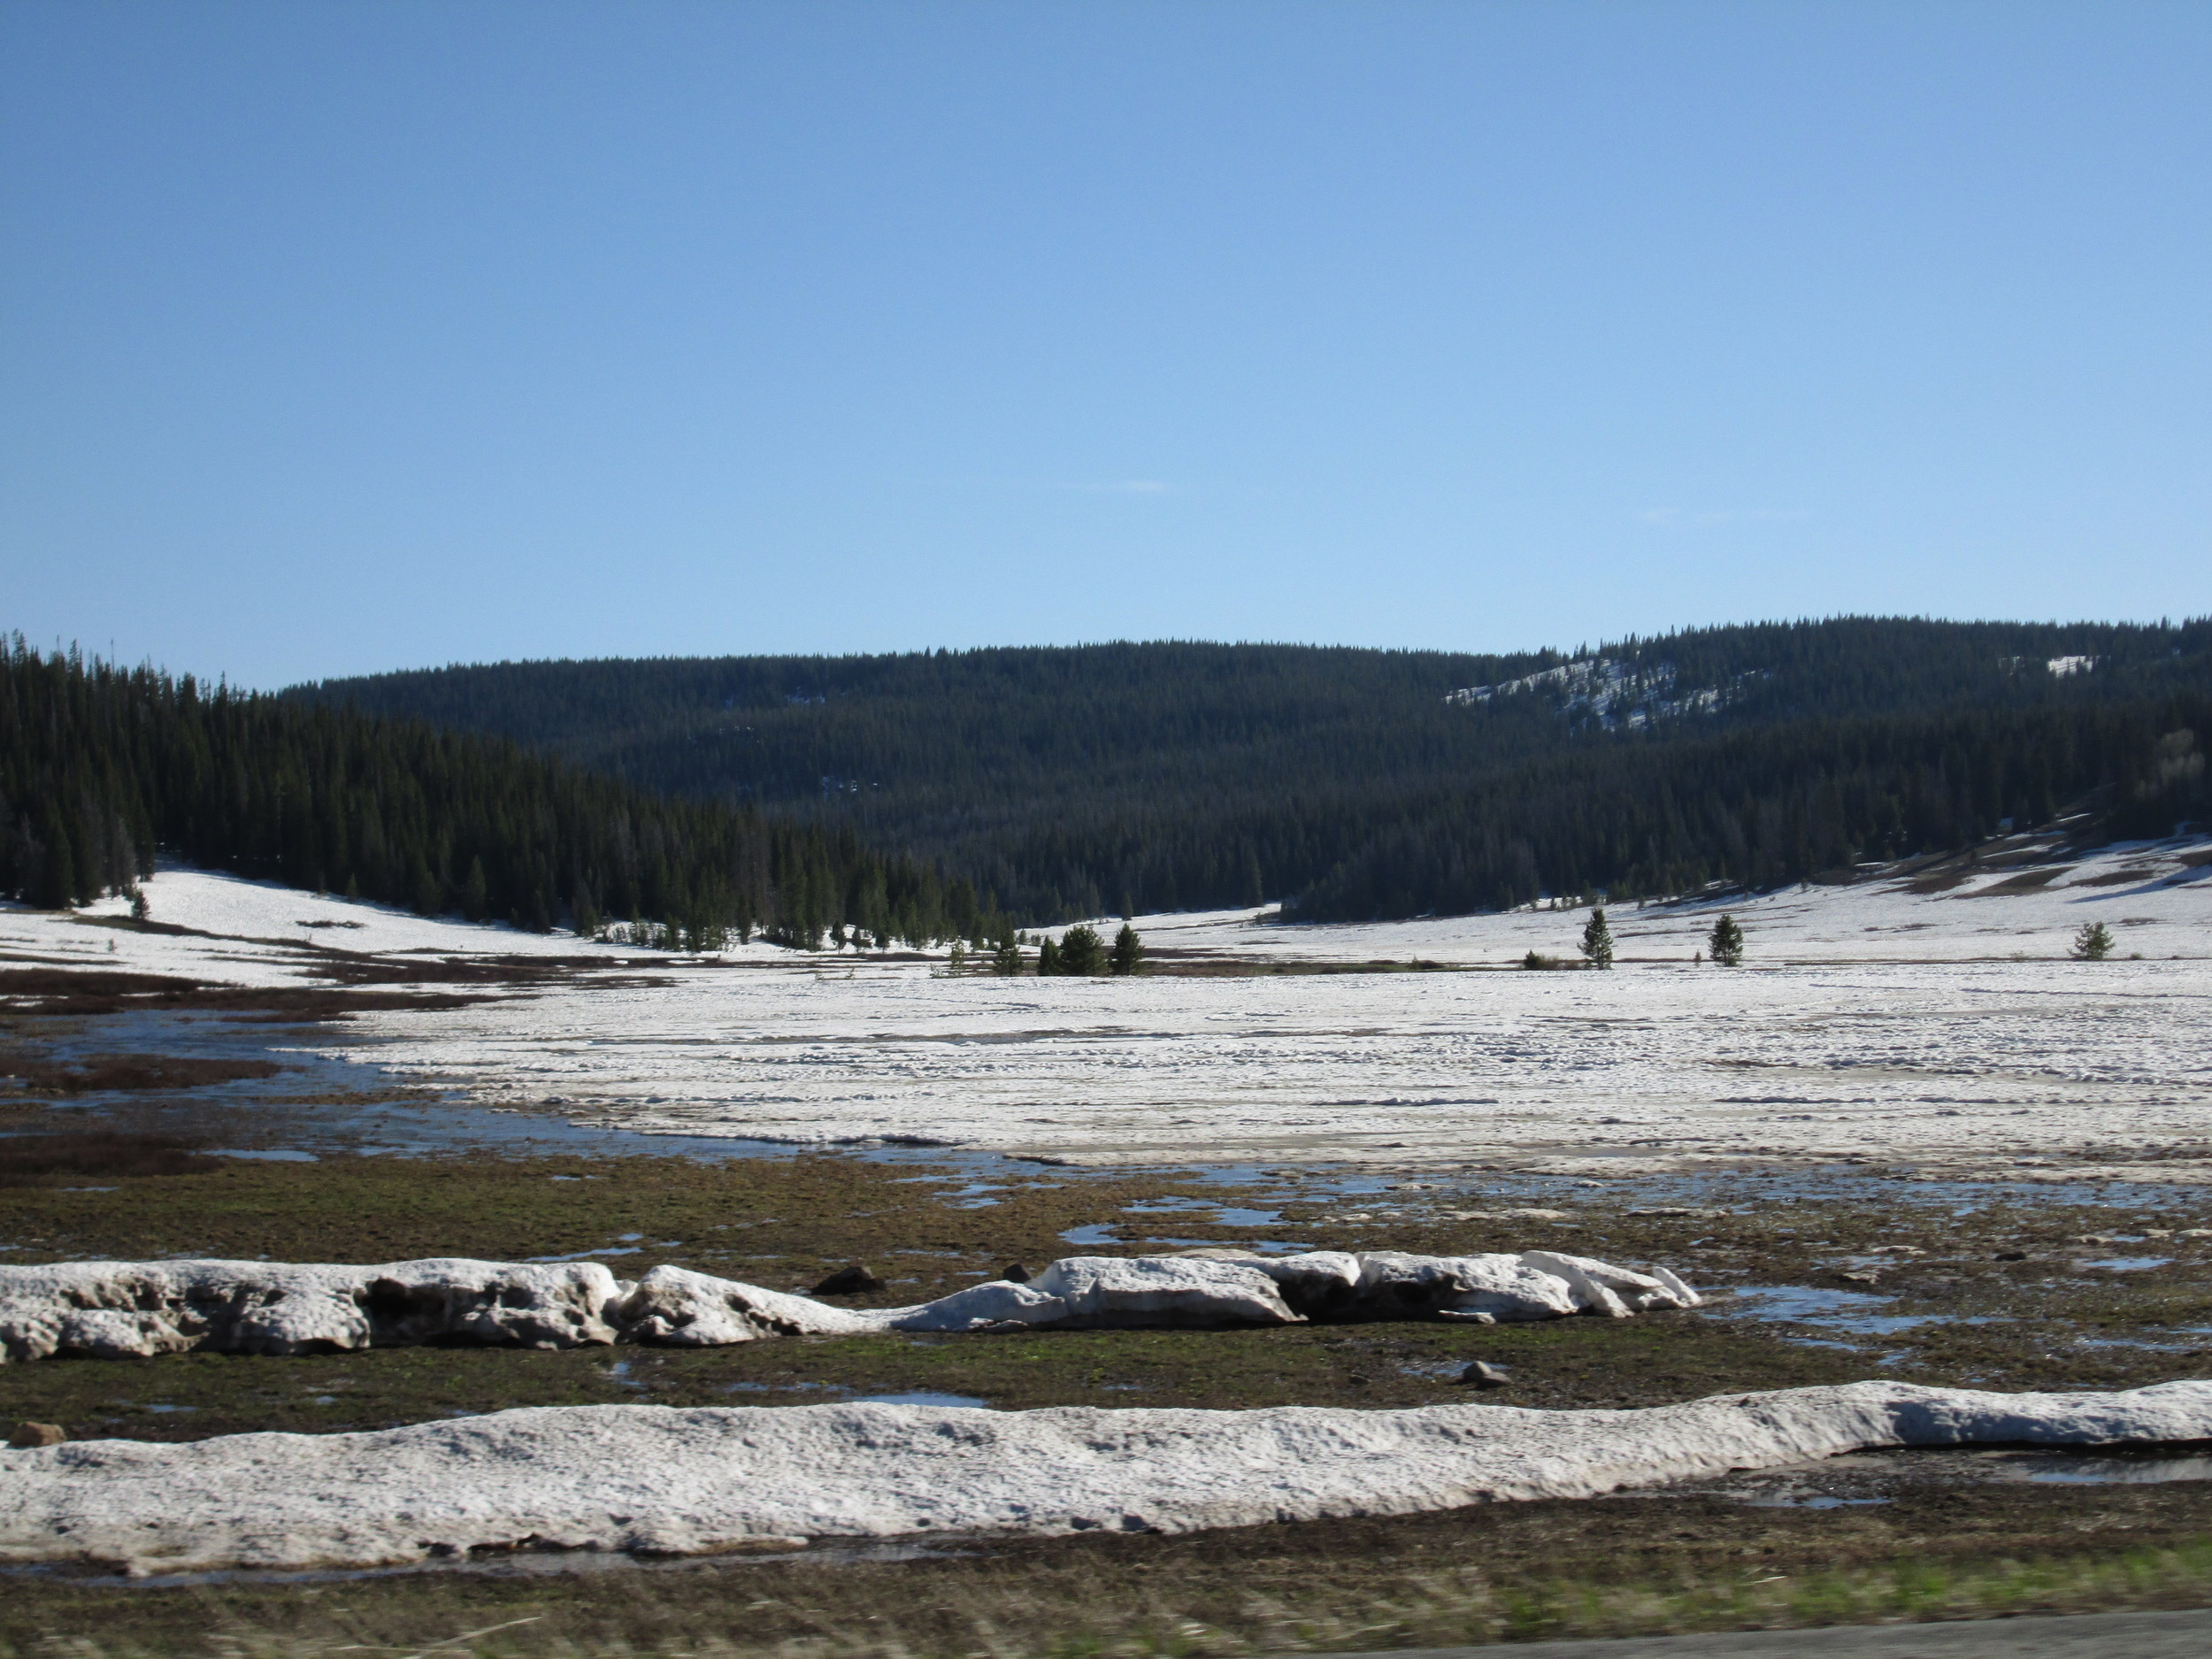 Open parks on the Rabbit Ears Pass plateau were exhibiting very rapid snowmelt in very dirty snow, generating extensive sheet flow, standing water, and 'lakes' of slushy snow, as seen on the late afternoon of June 3.